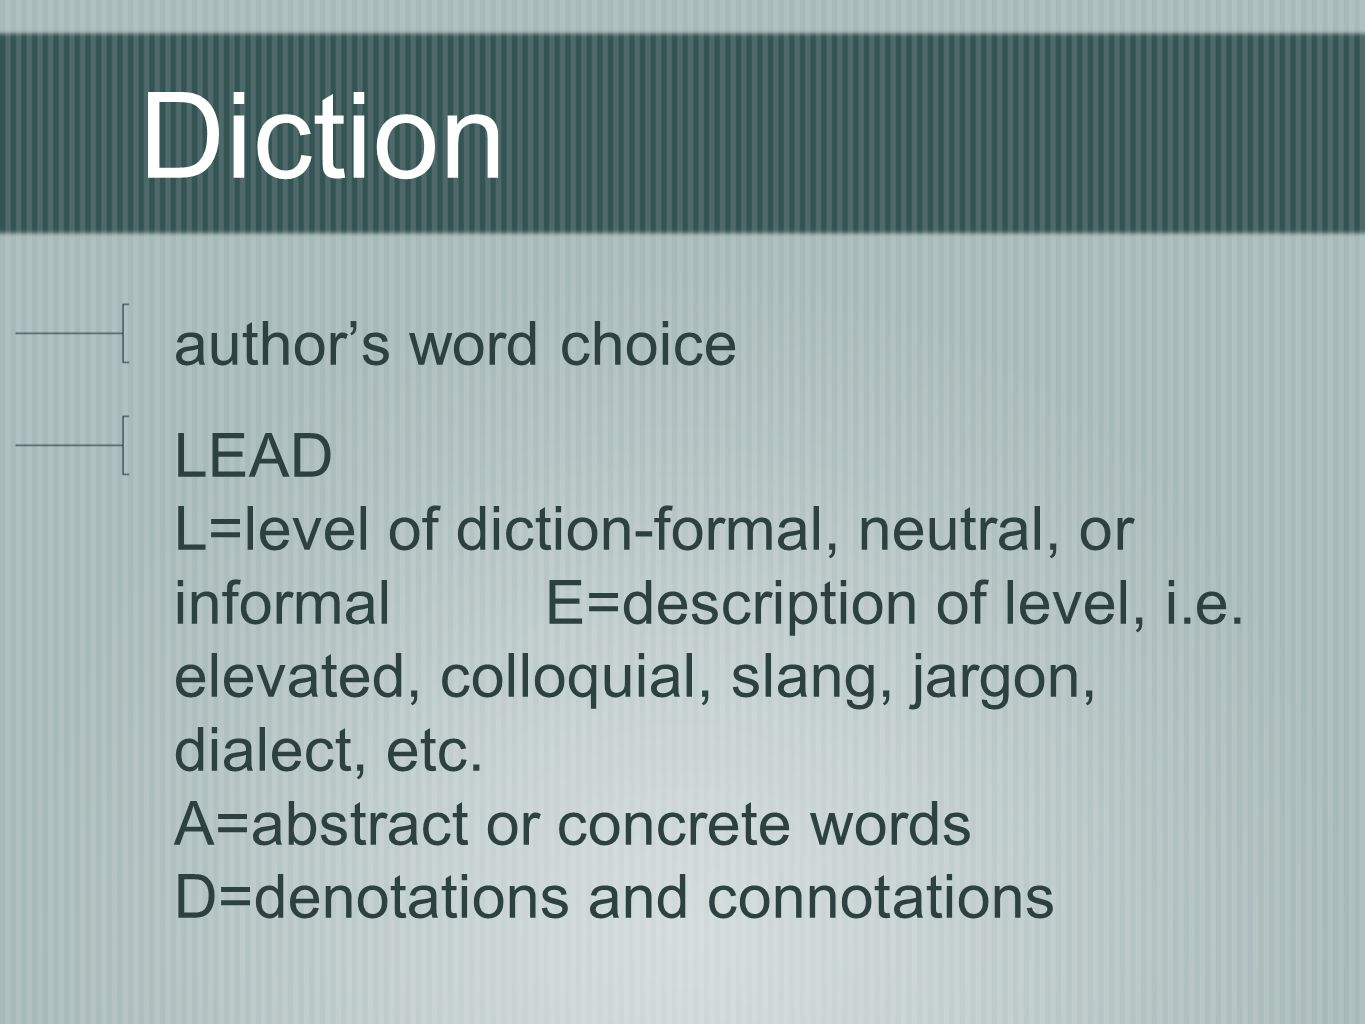 Diction author's word choice